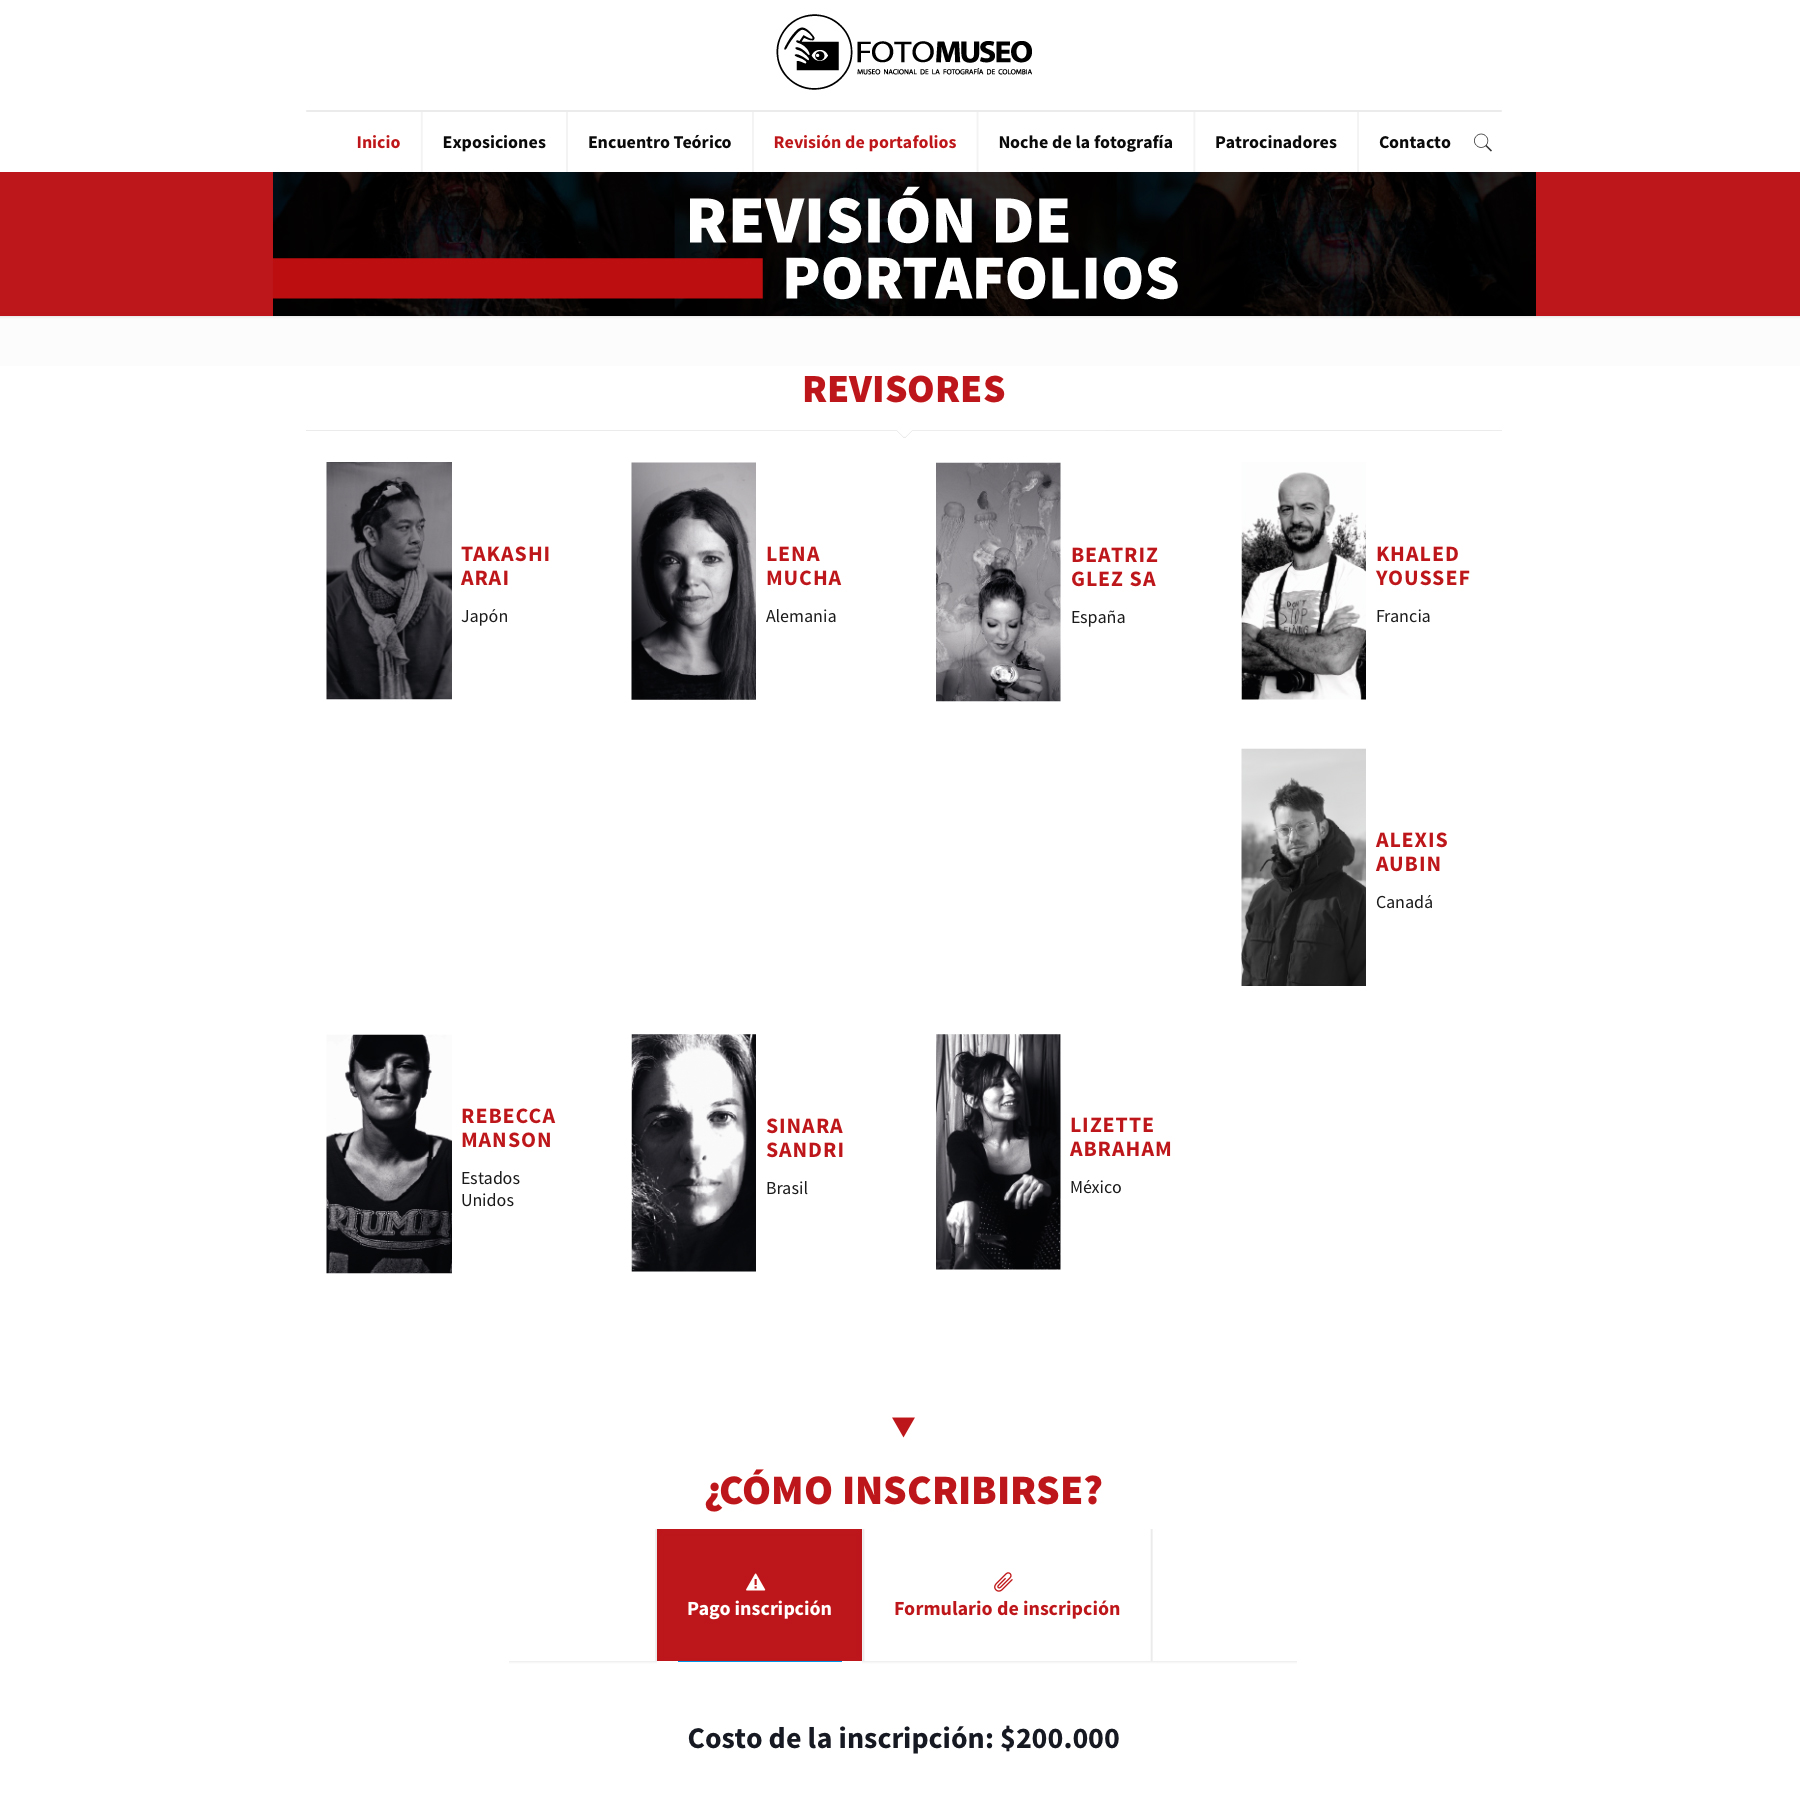 Revisión-de-Portfolios-Screen-Shot-2019-04-16-at-21.59.09.jpg